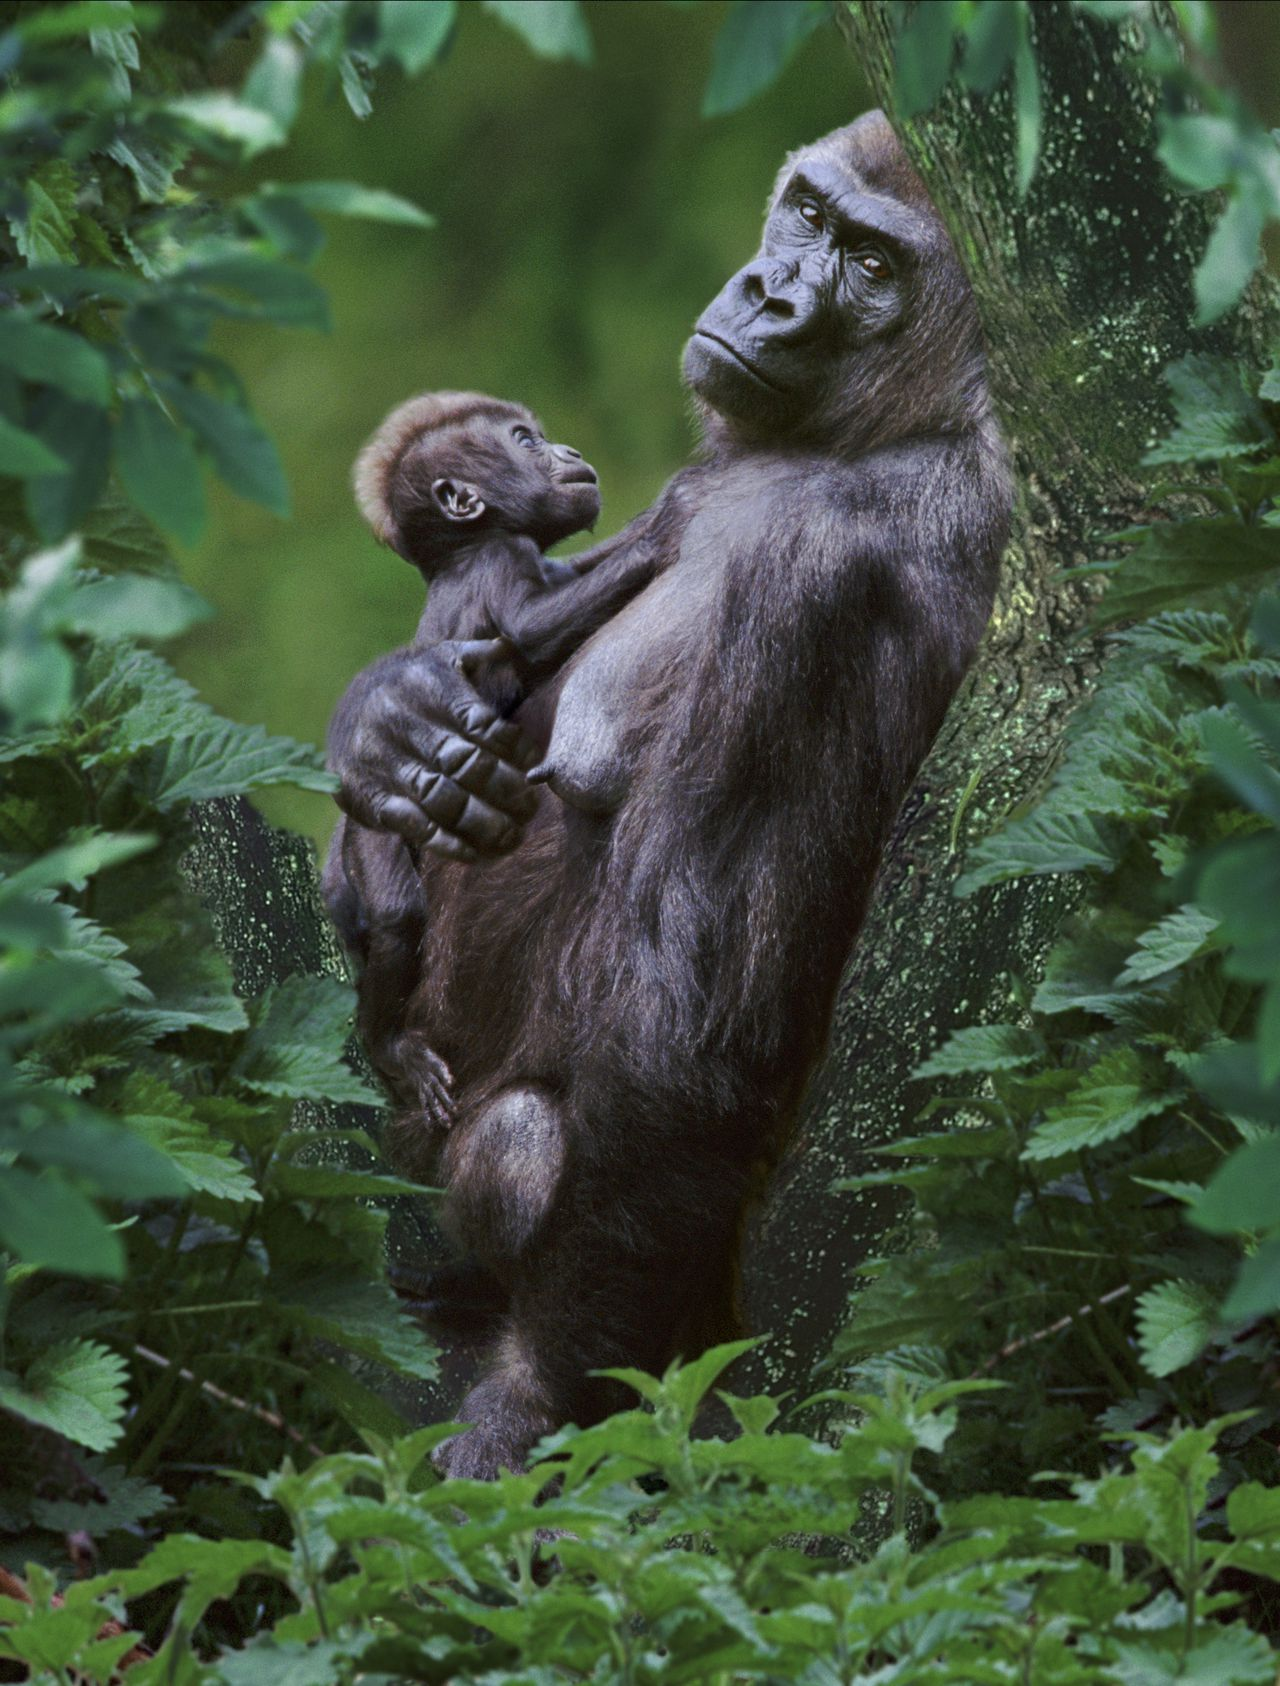 scene uit de documentaire One Life (2011) FOTO: Dutch FilmWorks A12465 Lowland gorilla mother and baby